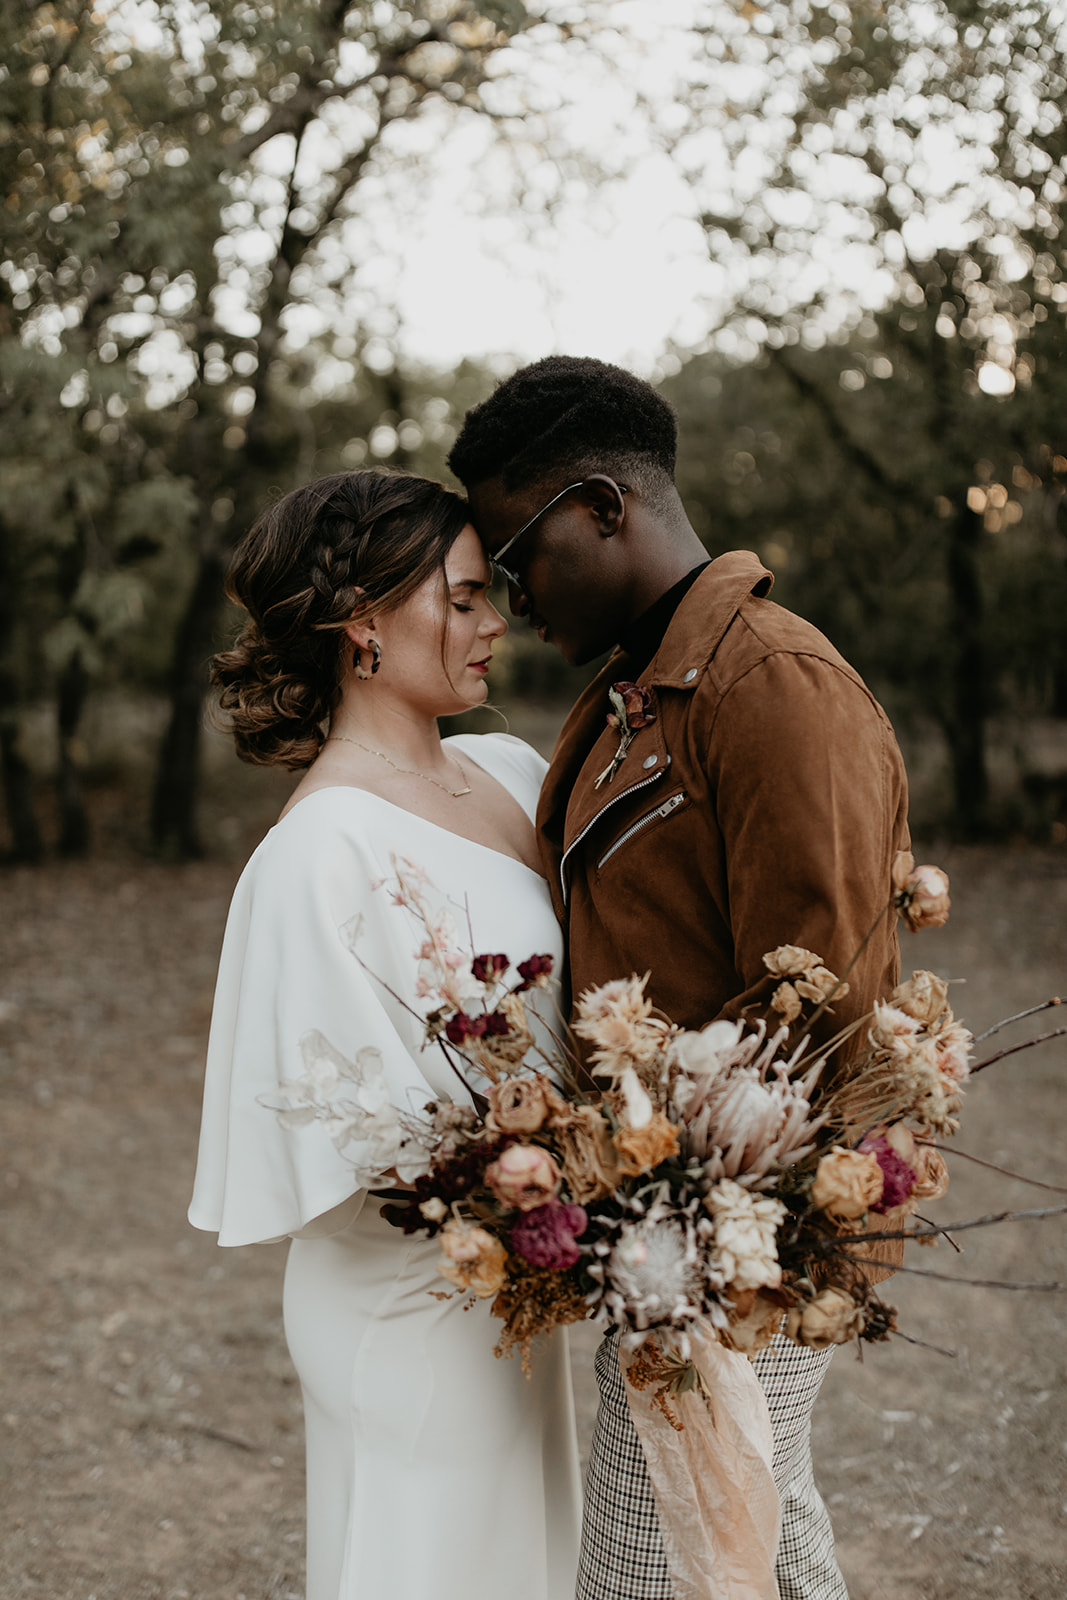 Moody Hygge Elopement - Featuring:Styling: Originally ScoutPhotography: Liesl ClairVenue: The ForgeHAMU: Well Beyond BeautyDress: Lovely Bride